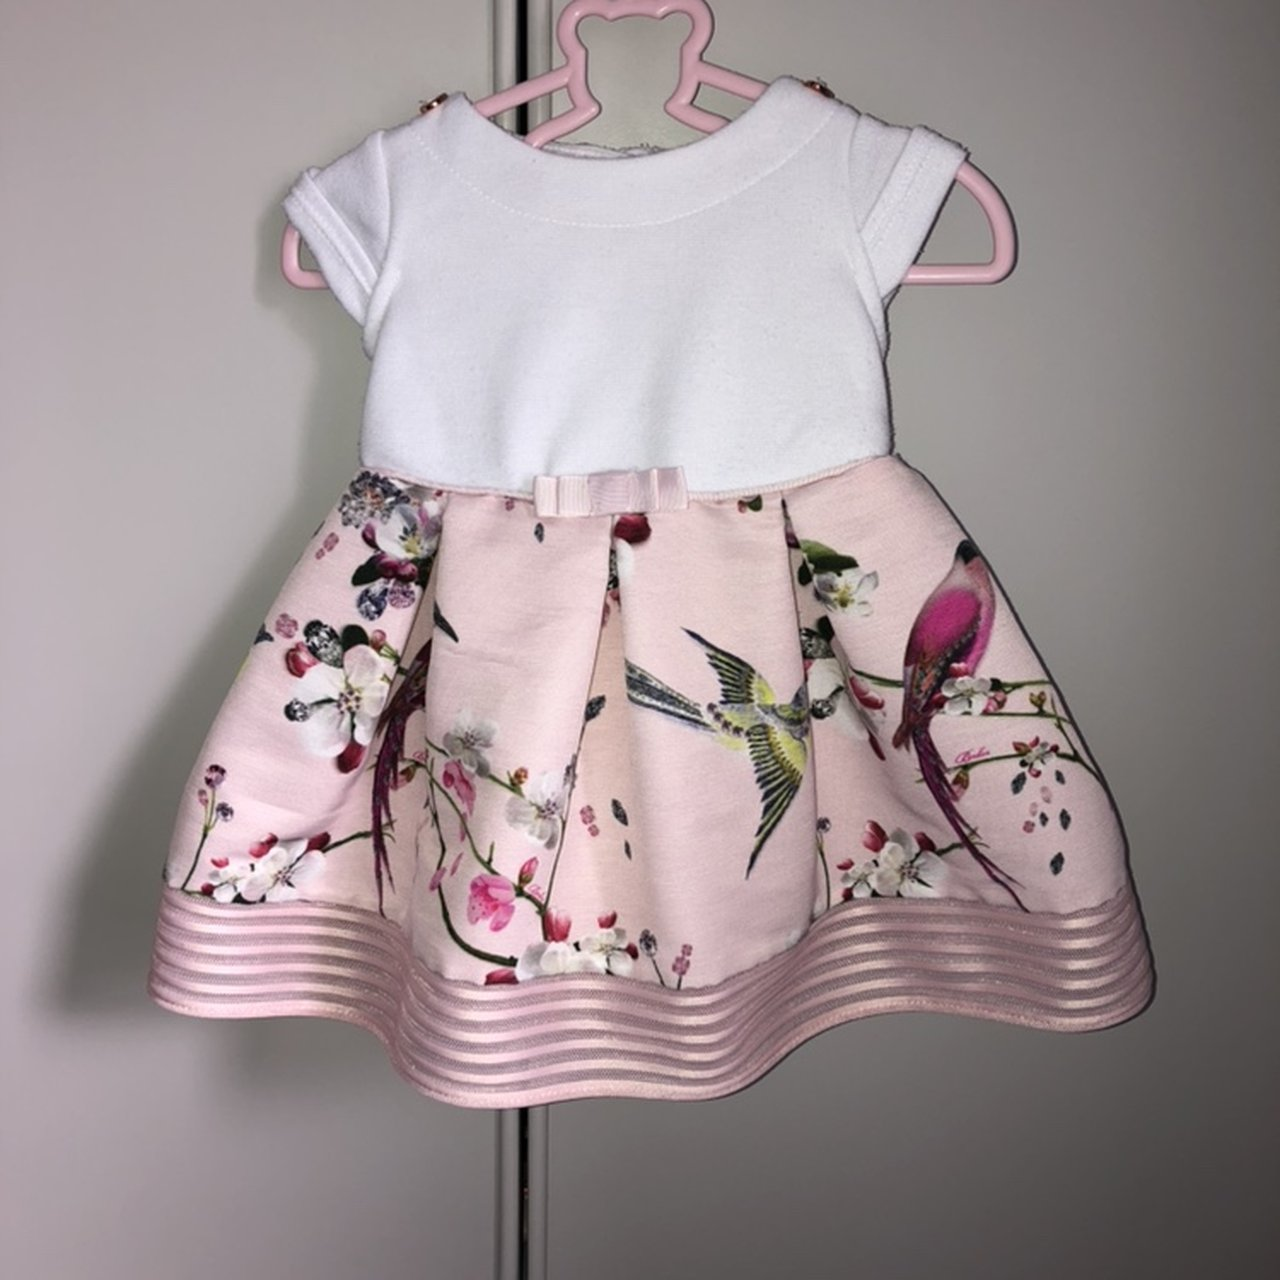 4d4bcd2b3b39 @3lii5ha. 6 months ago. Tonypandy, United Kingdom. Ted baker baby girl 3-6m  dress